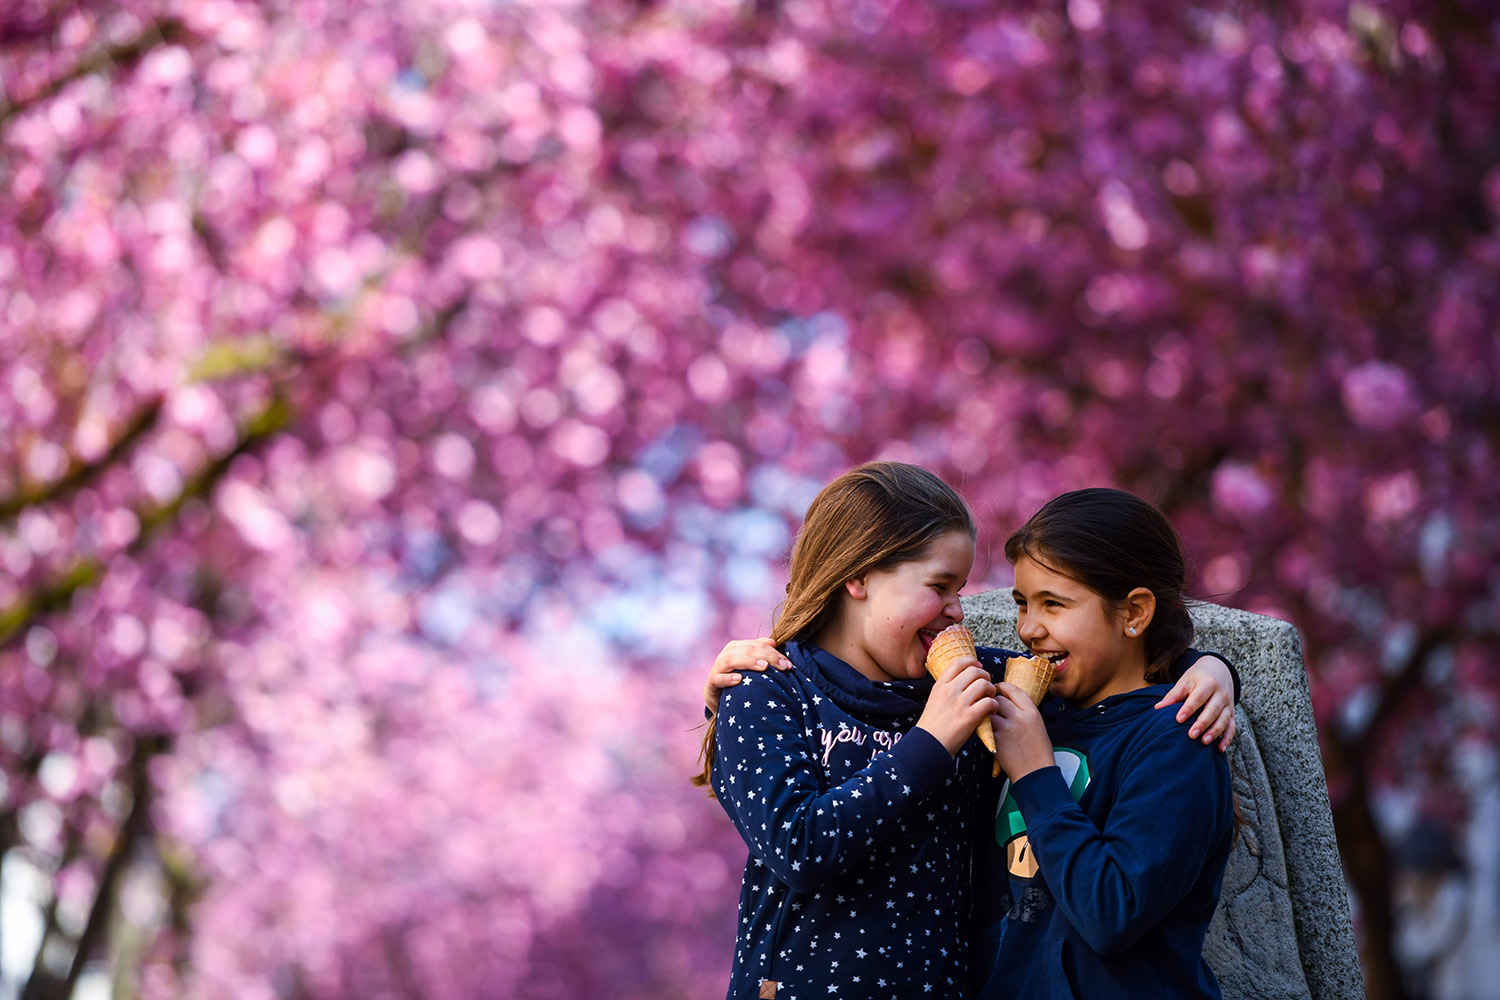 Two girls eat ice cream under the blooming cherry trees in Bonn, western Germany, on April 5. INA FASSBENDER/AFP via Getty Images